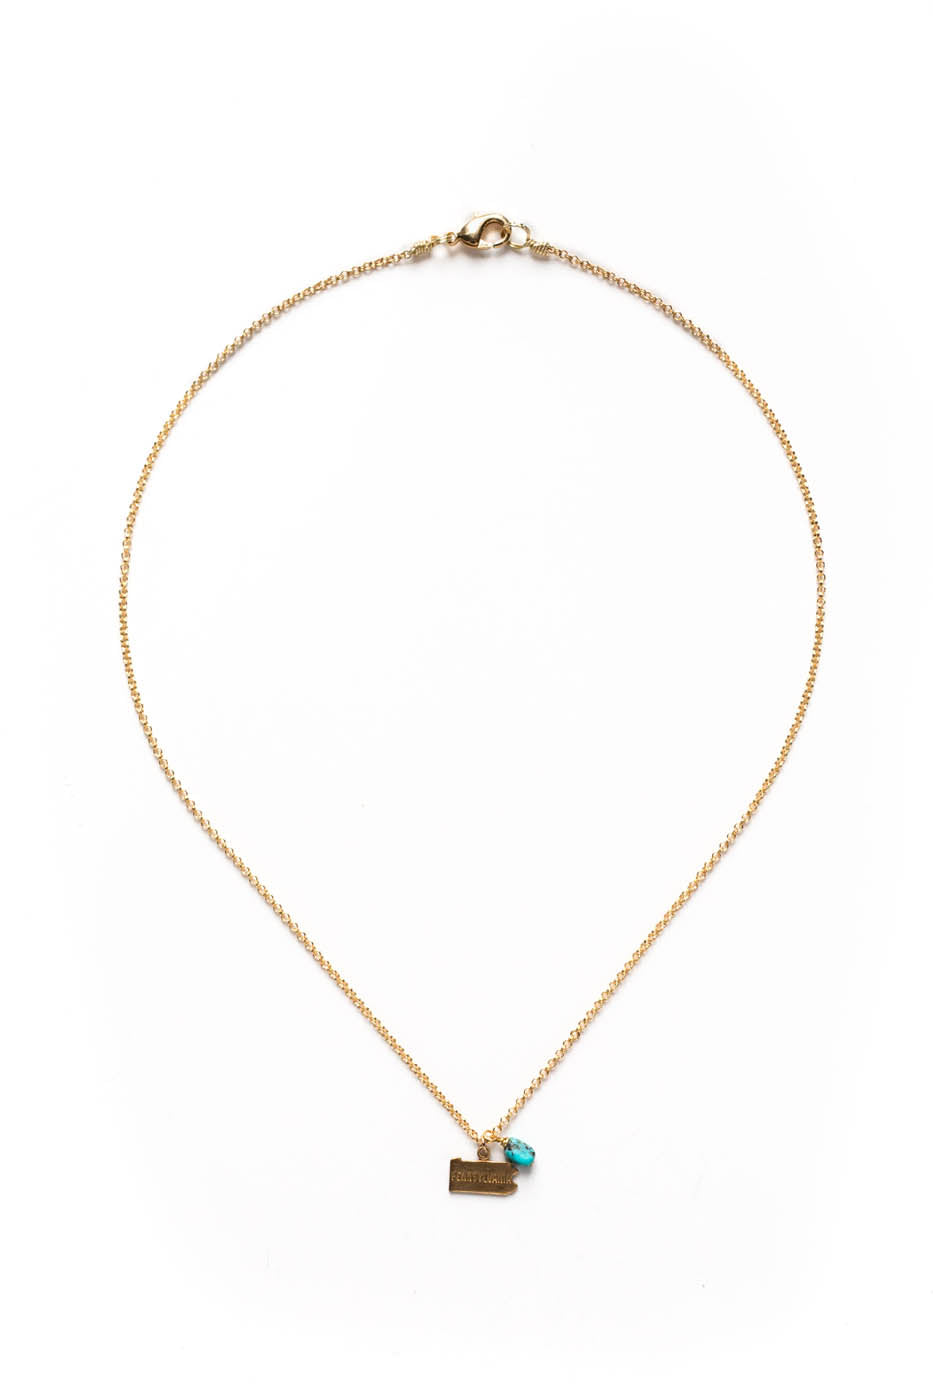 State Charm Necklace w/ Turquoise Nugget on Gold Rolo Chain